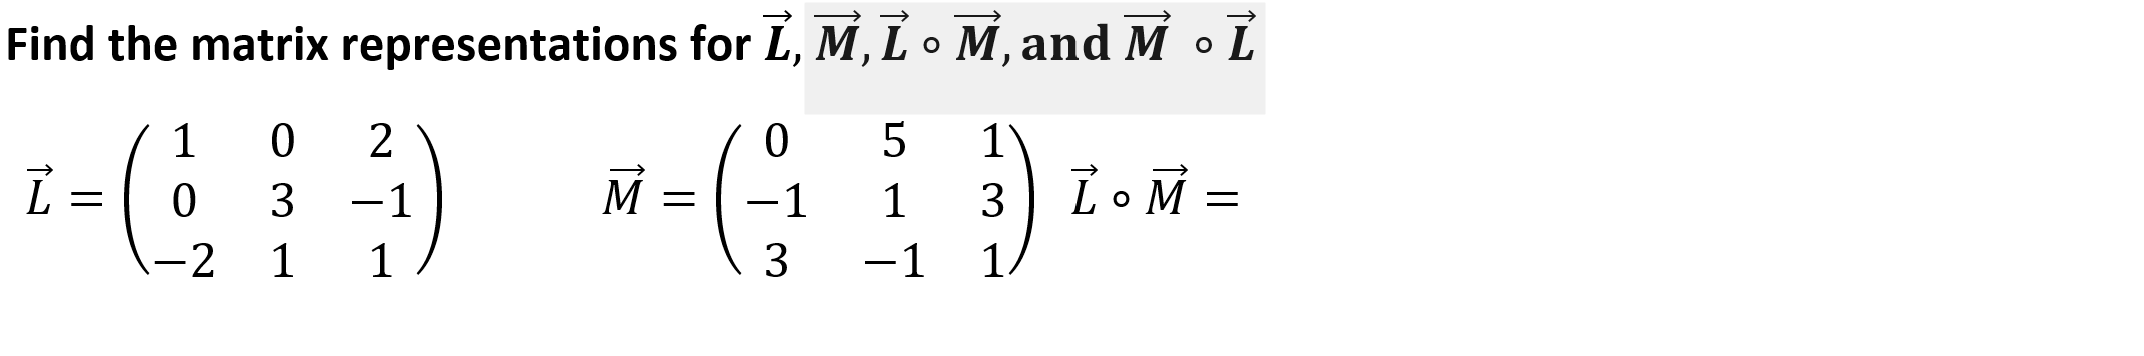 Find the matrix representations for L, M, L o M, and M o L 1 ZOM 5 0 2 -( M 0 3 1 1 3 2 1 1 3 -1 1.